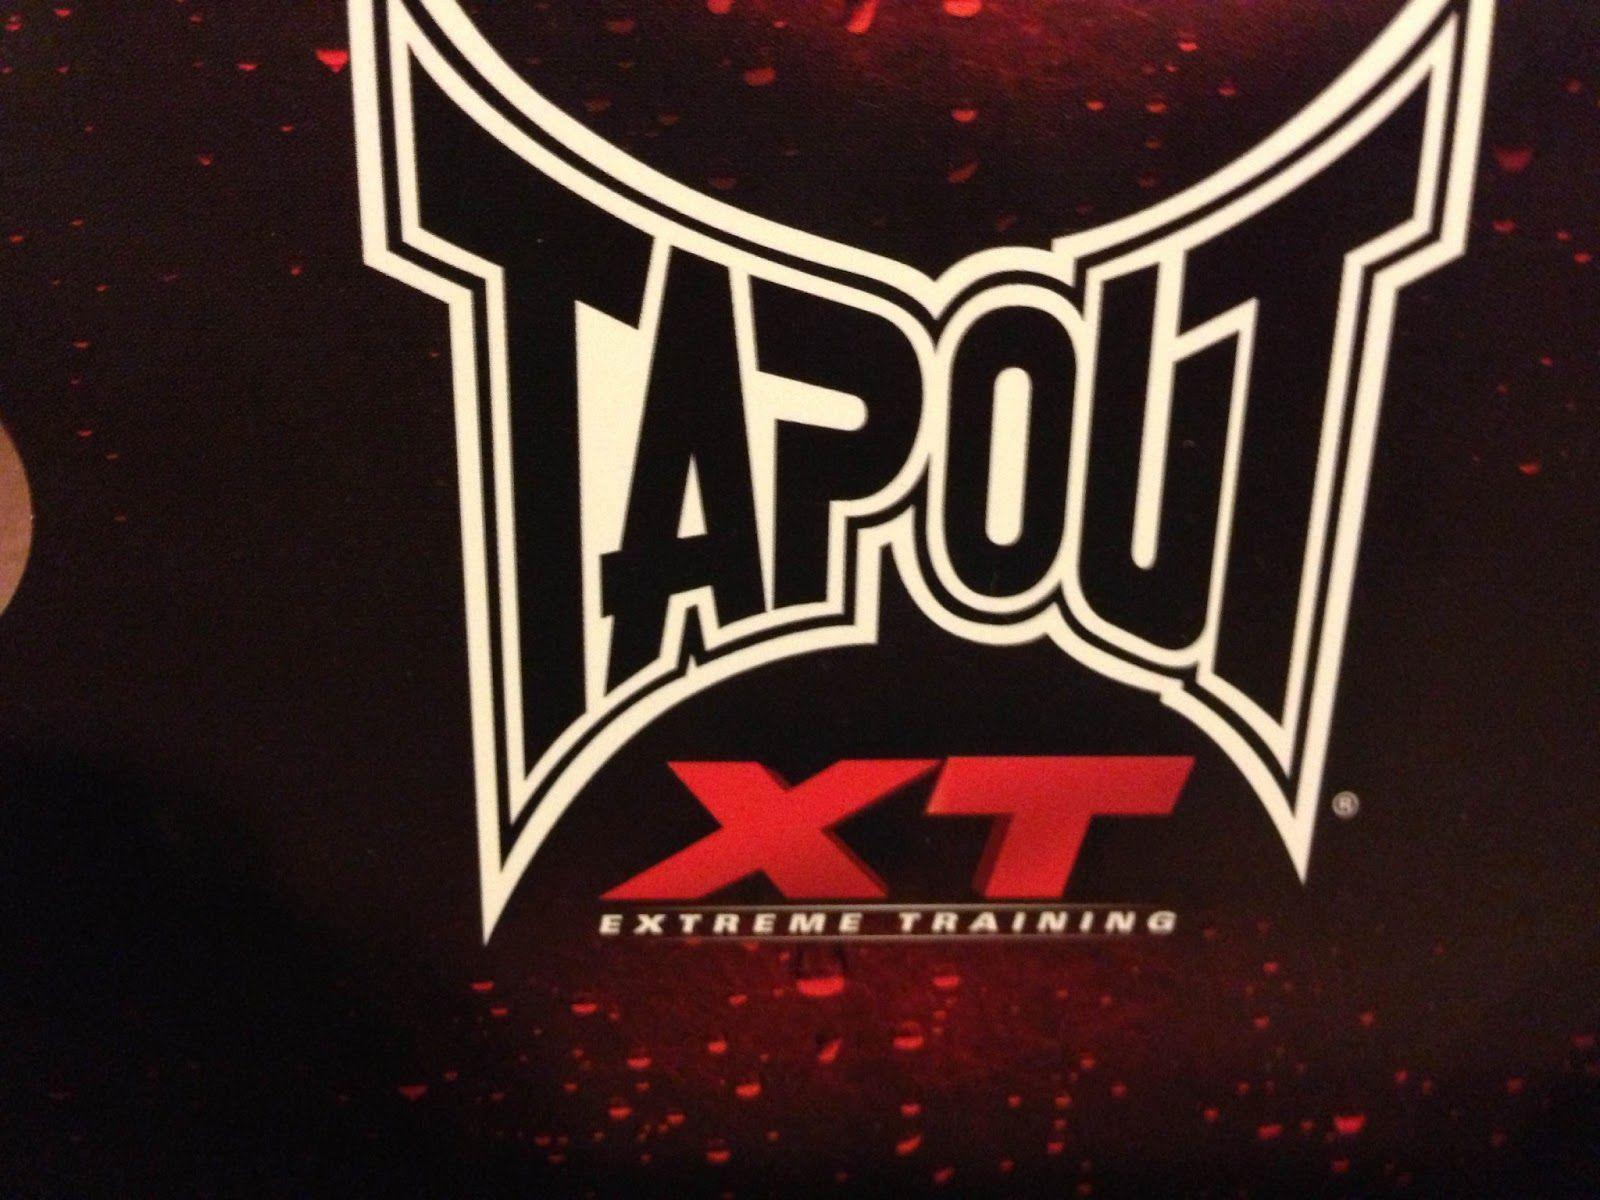 tapout wallpaper for facebook - photo #12